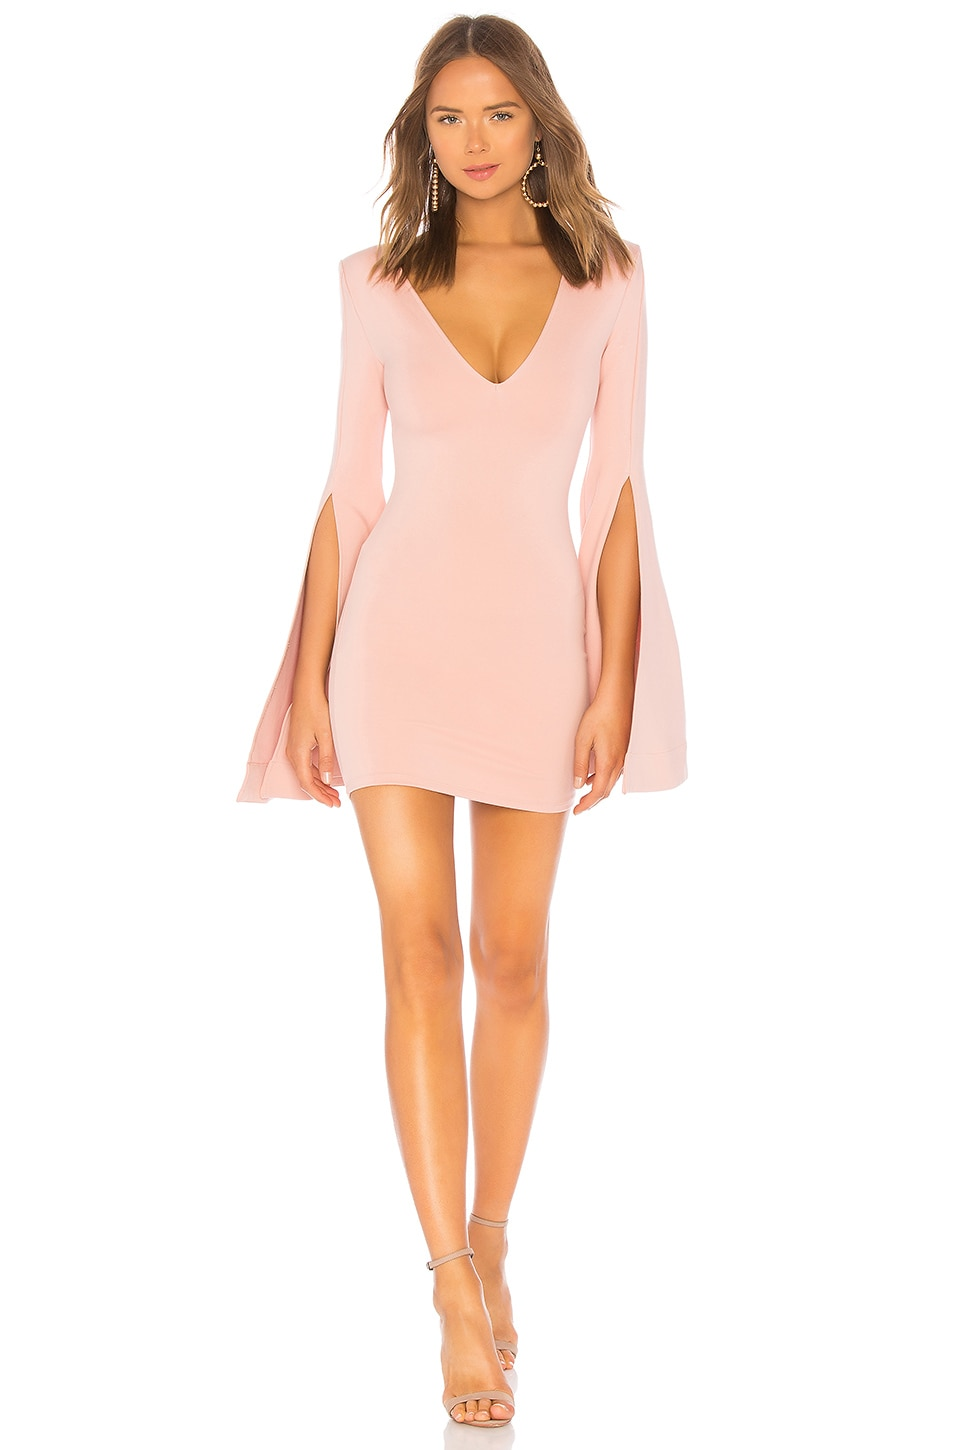 Michael Costello x REVOLVE Moseley Mini Dress in Blush